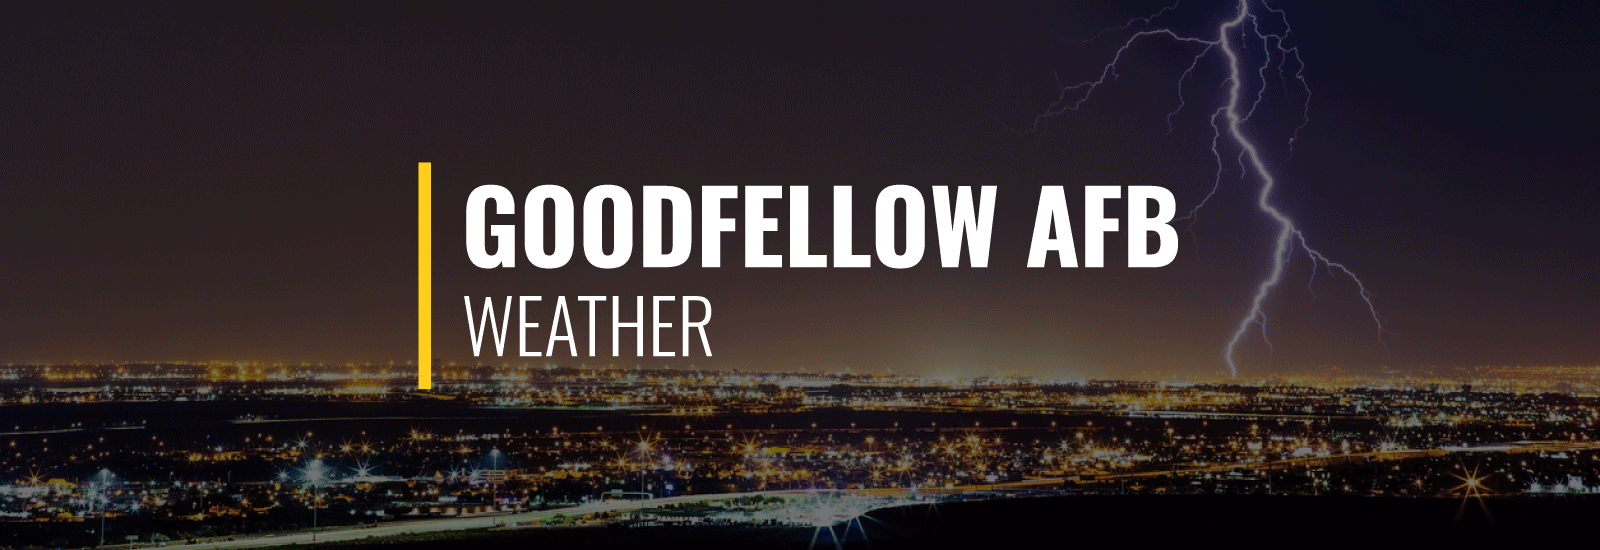 Goodfellow AFB Weather